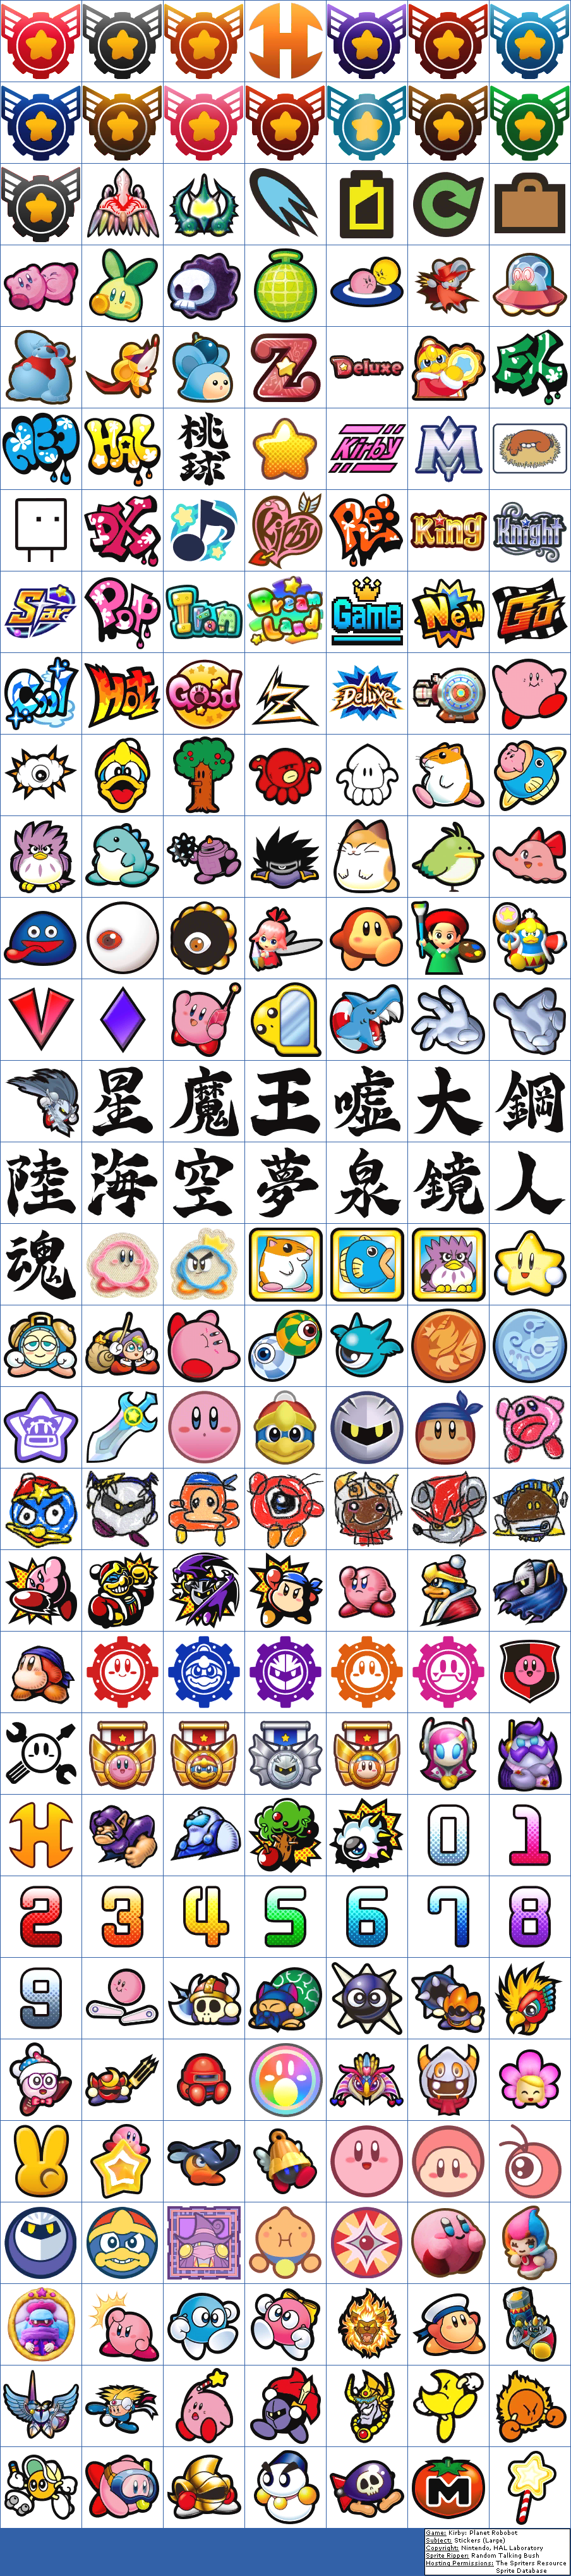 Click for full sized image stickers large